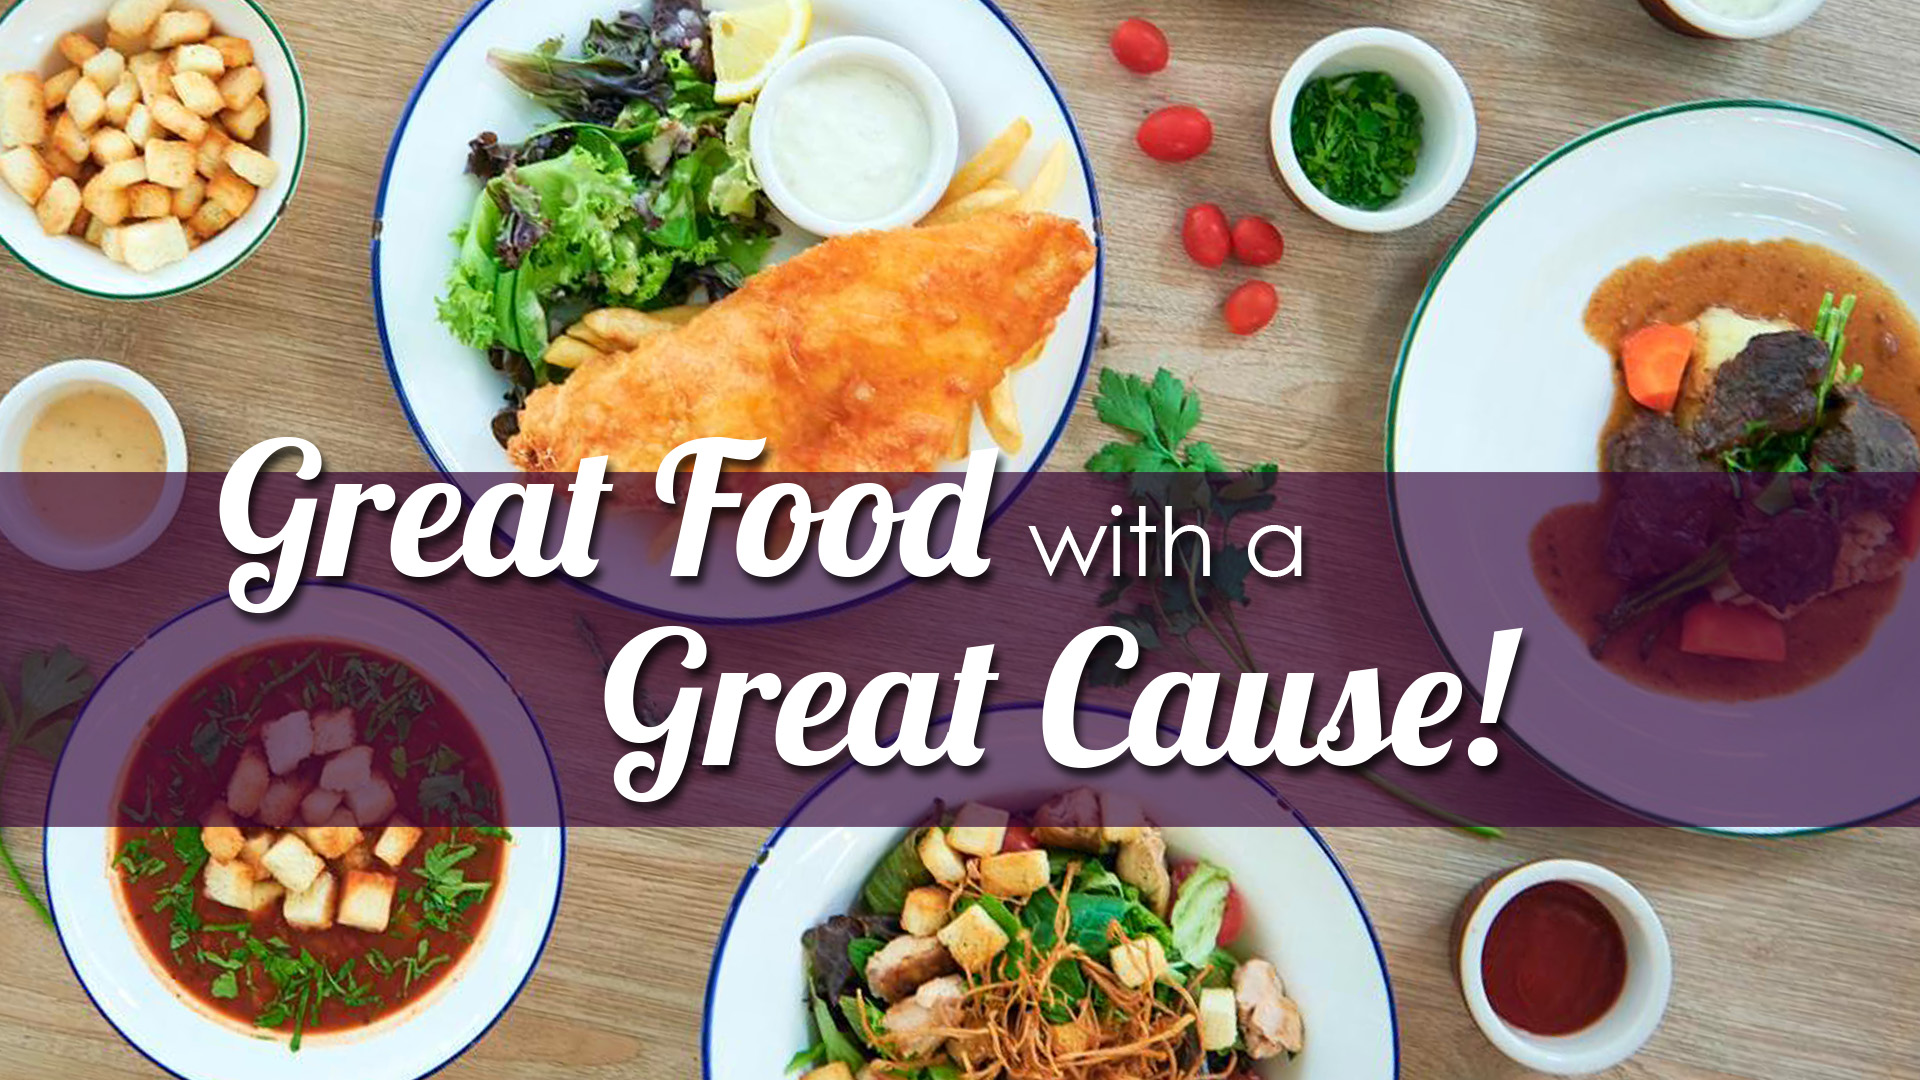 Great Food with a Great Cause